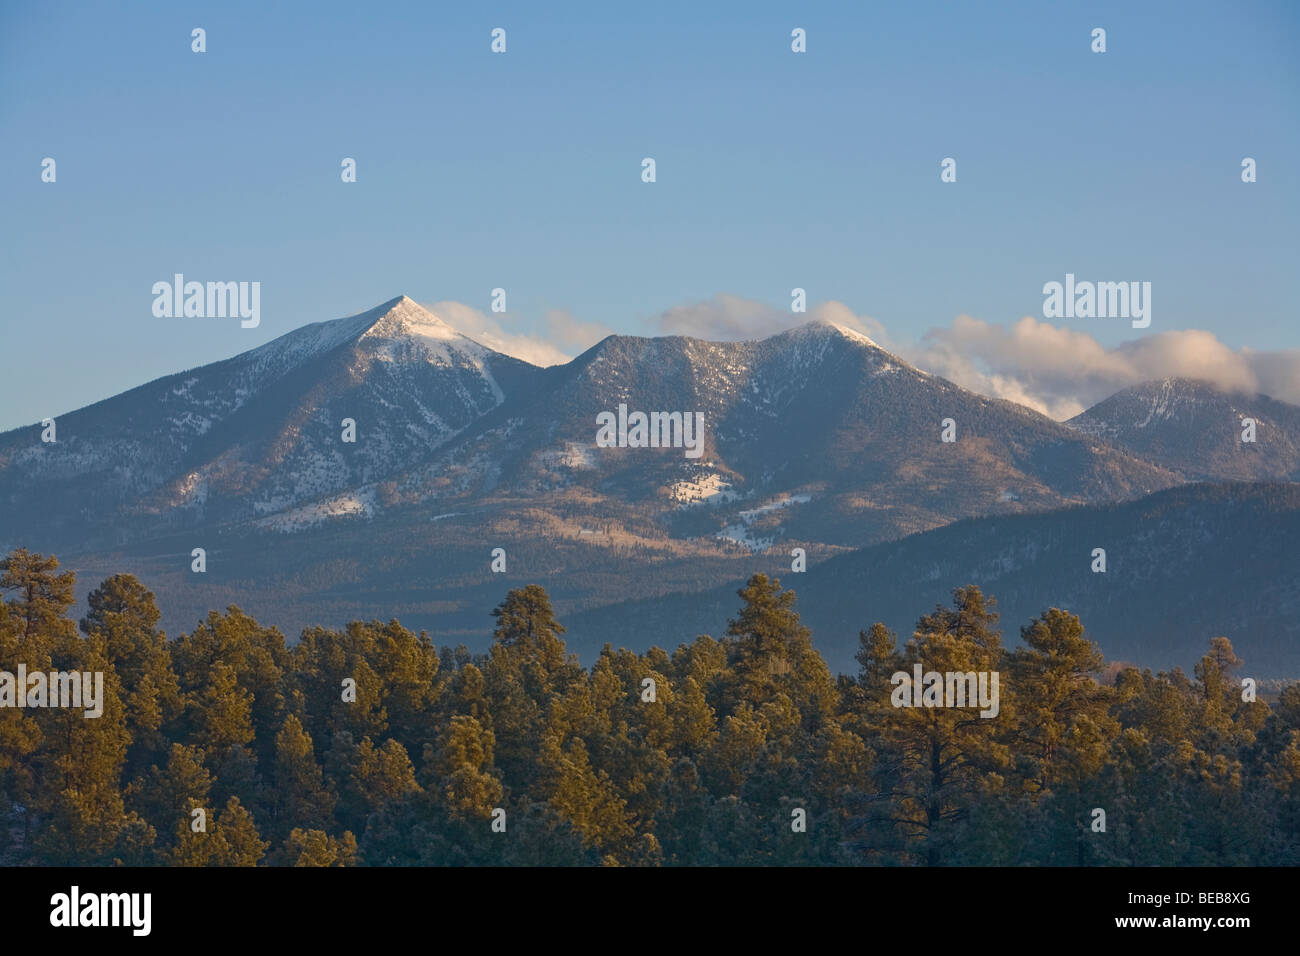 San Francisco Peaks in inverno mattina, visto da NAU campus, Flagstaff, in Arizona, Stati Uniti d'America Immagini Stock